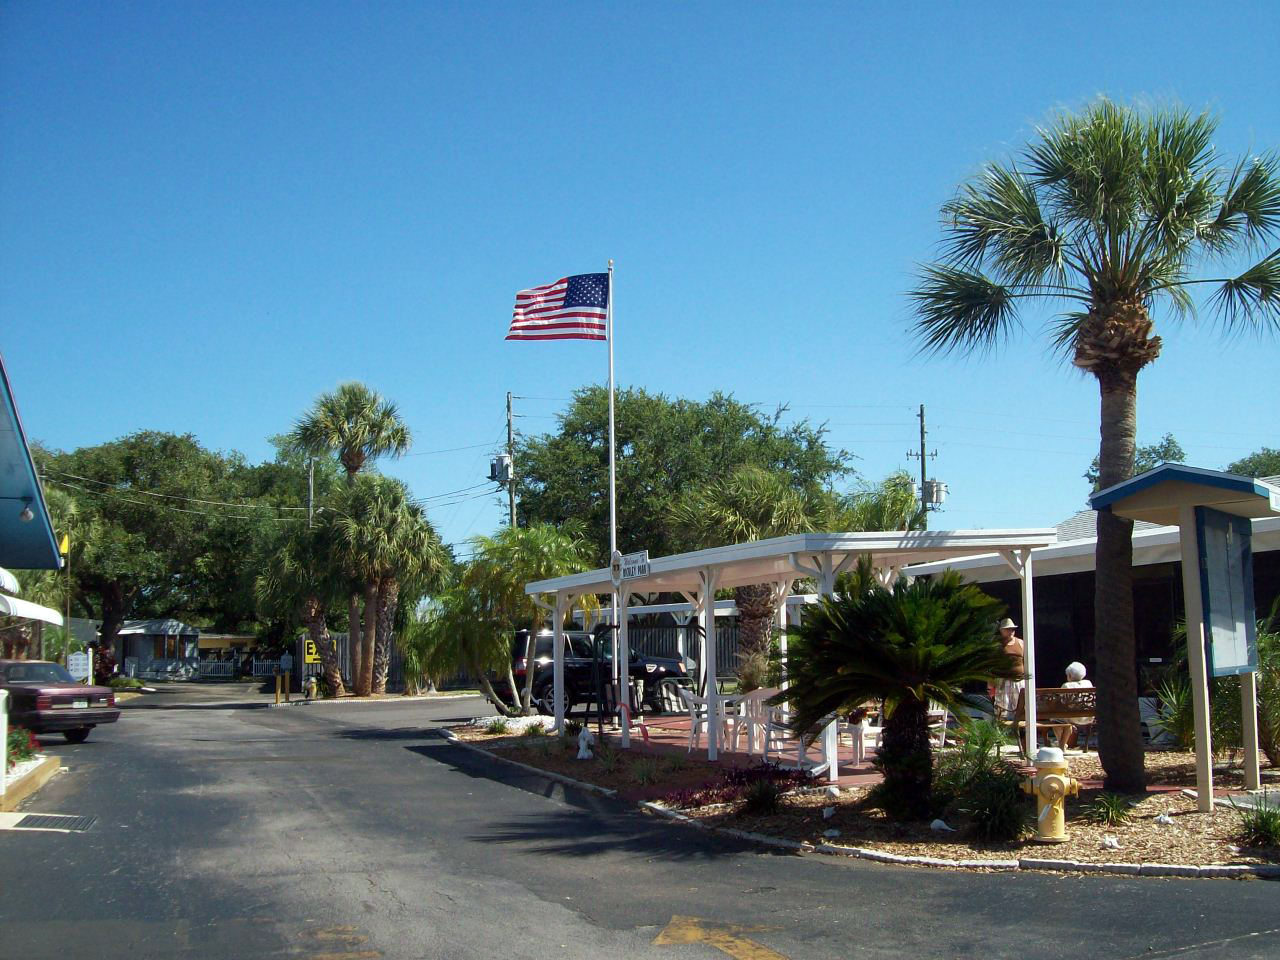 Passport America Site Seers Bickley Rv Park Seminole St